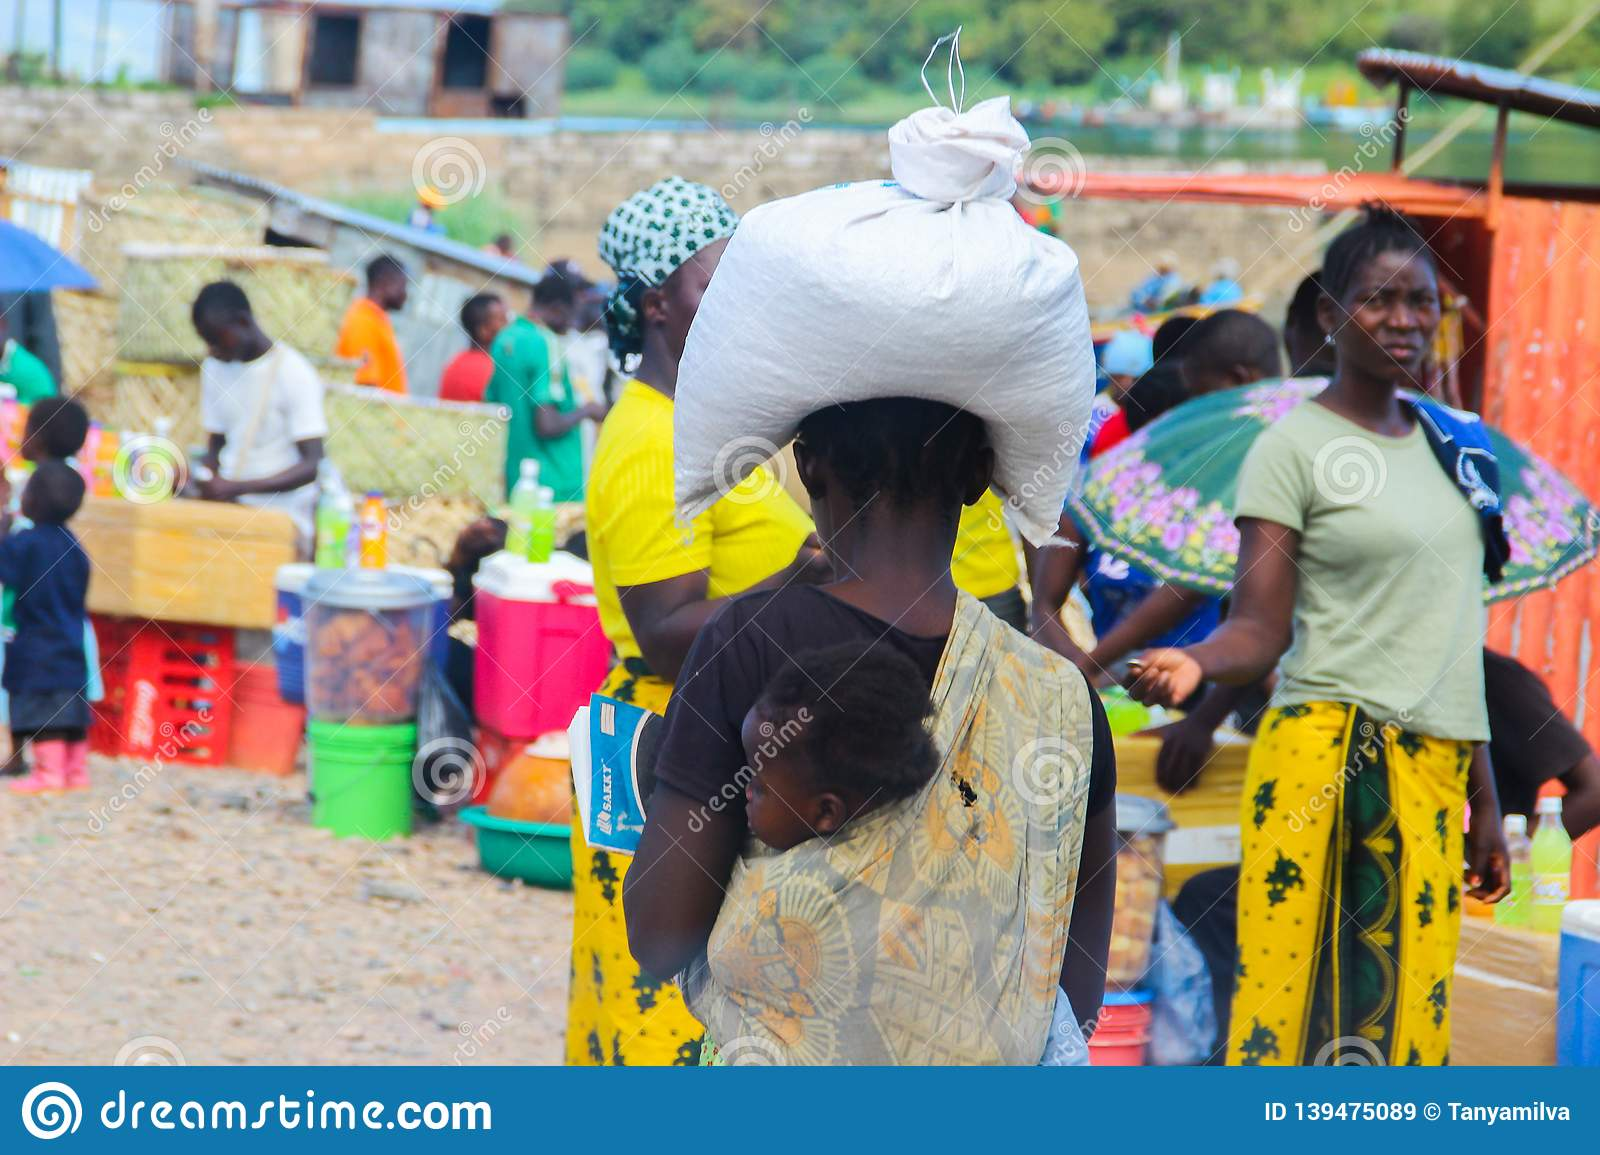 African woman carrying a bag with groceries on her head and a child wrapped in a scarf on her back